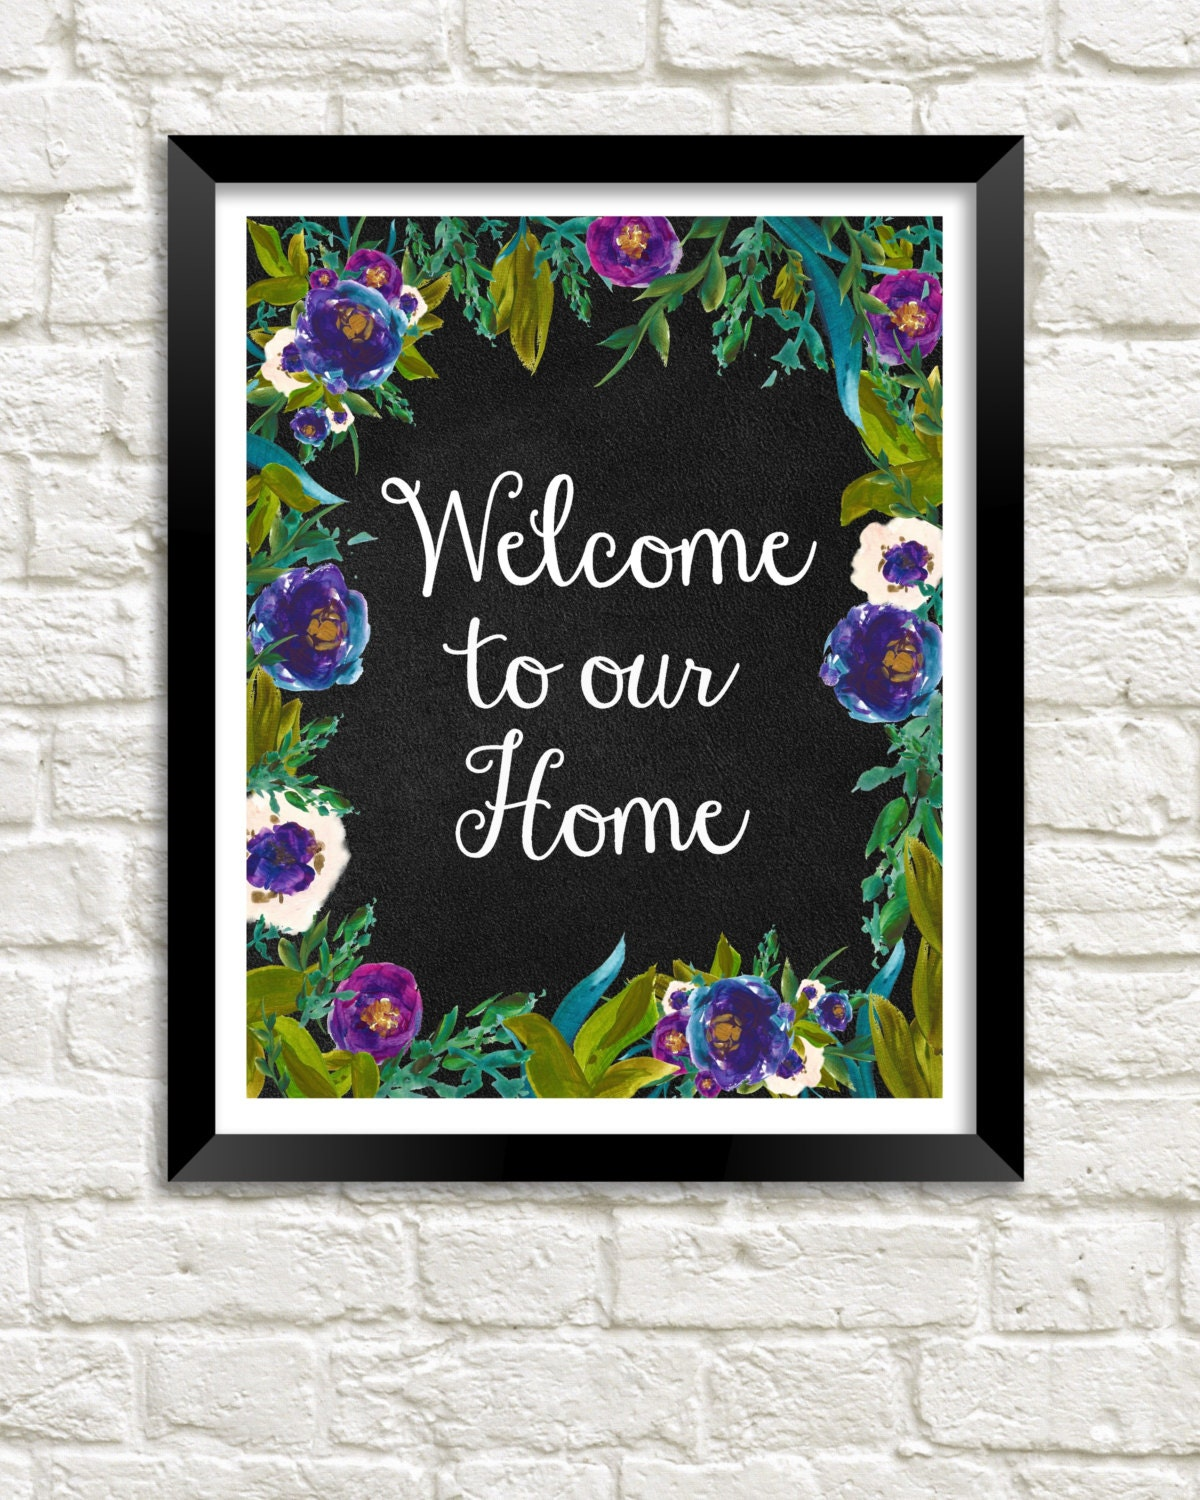 Welcome To Our Home: Welcome To Our Home Printable Instant Download Watercolor